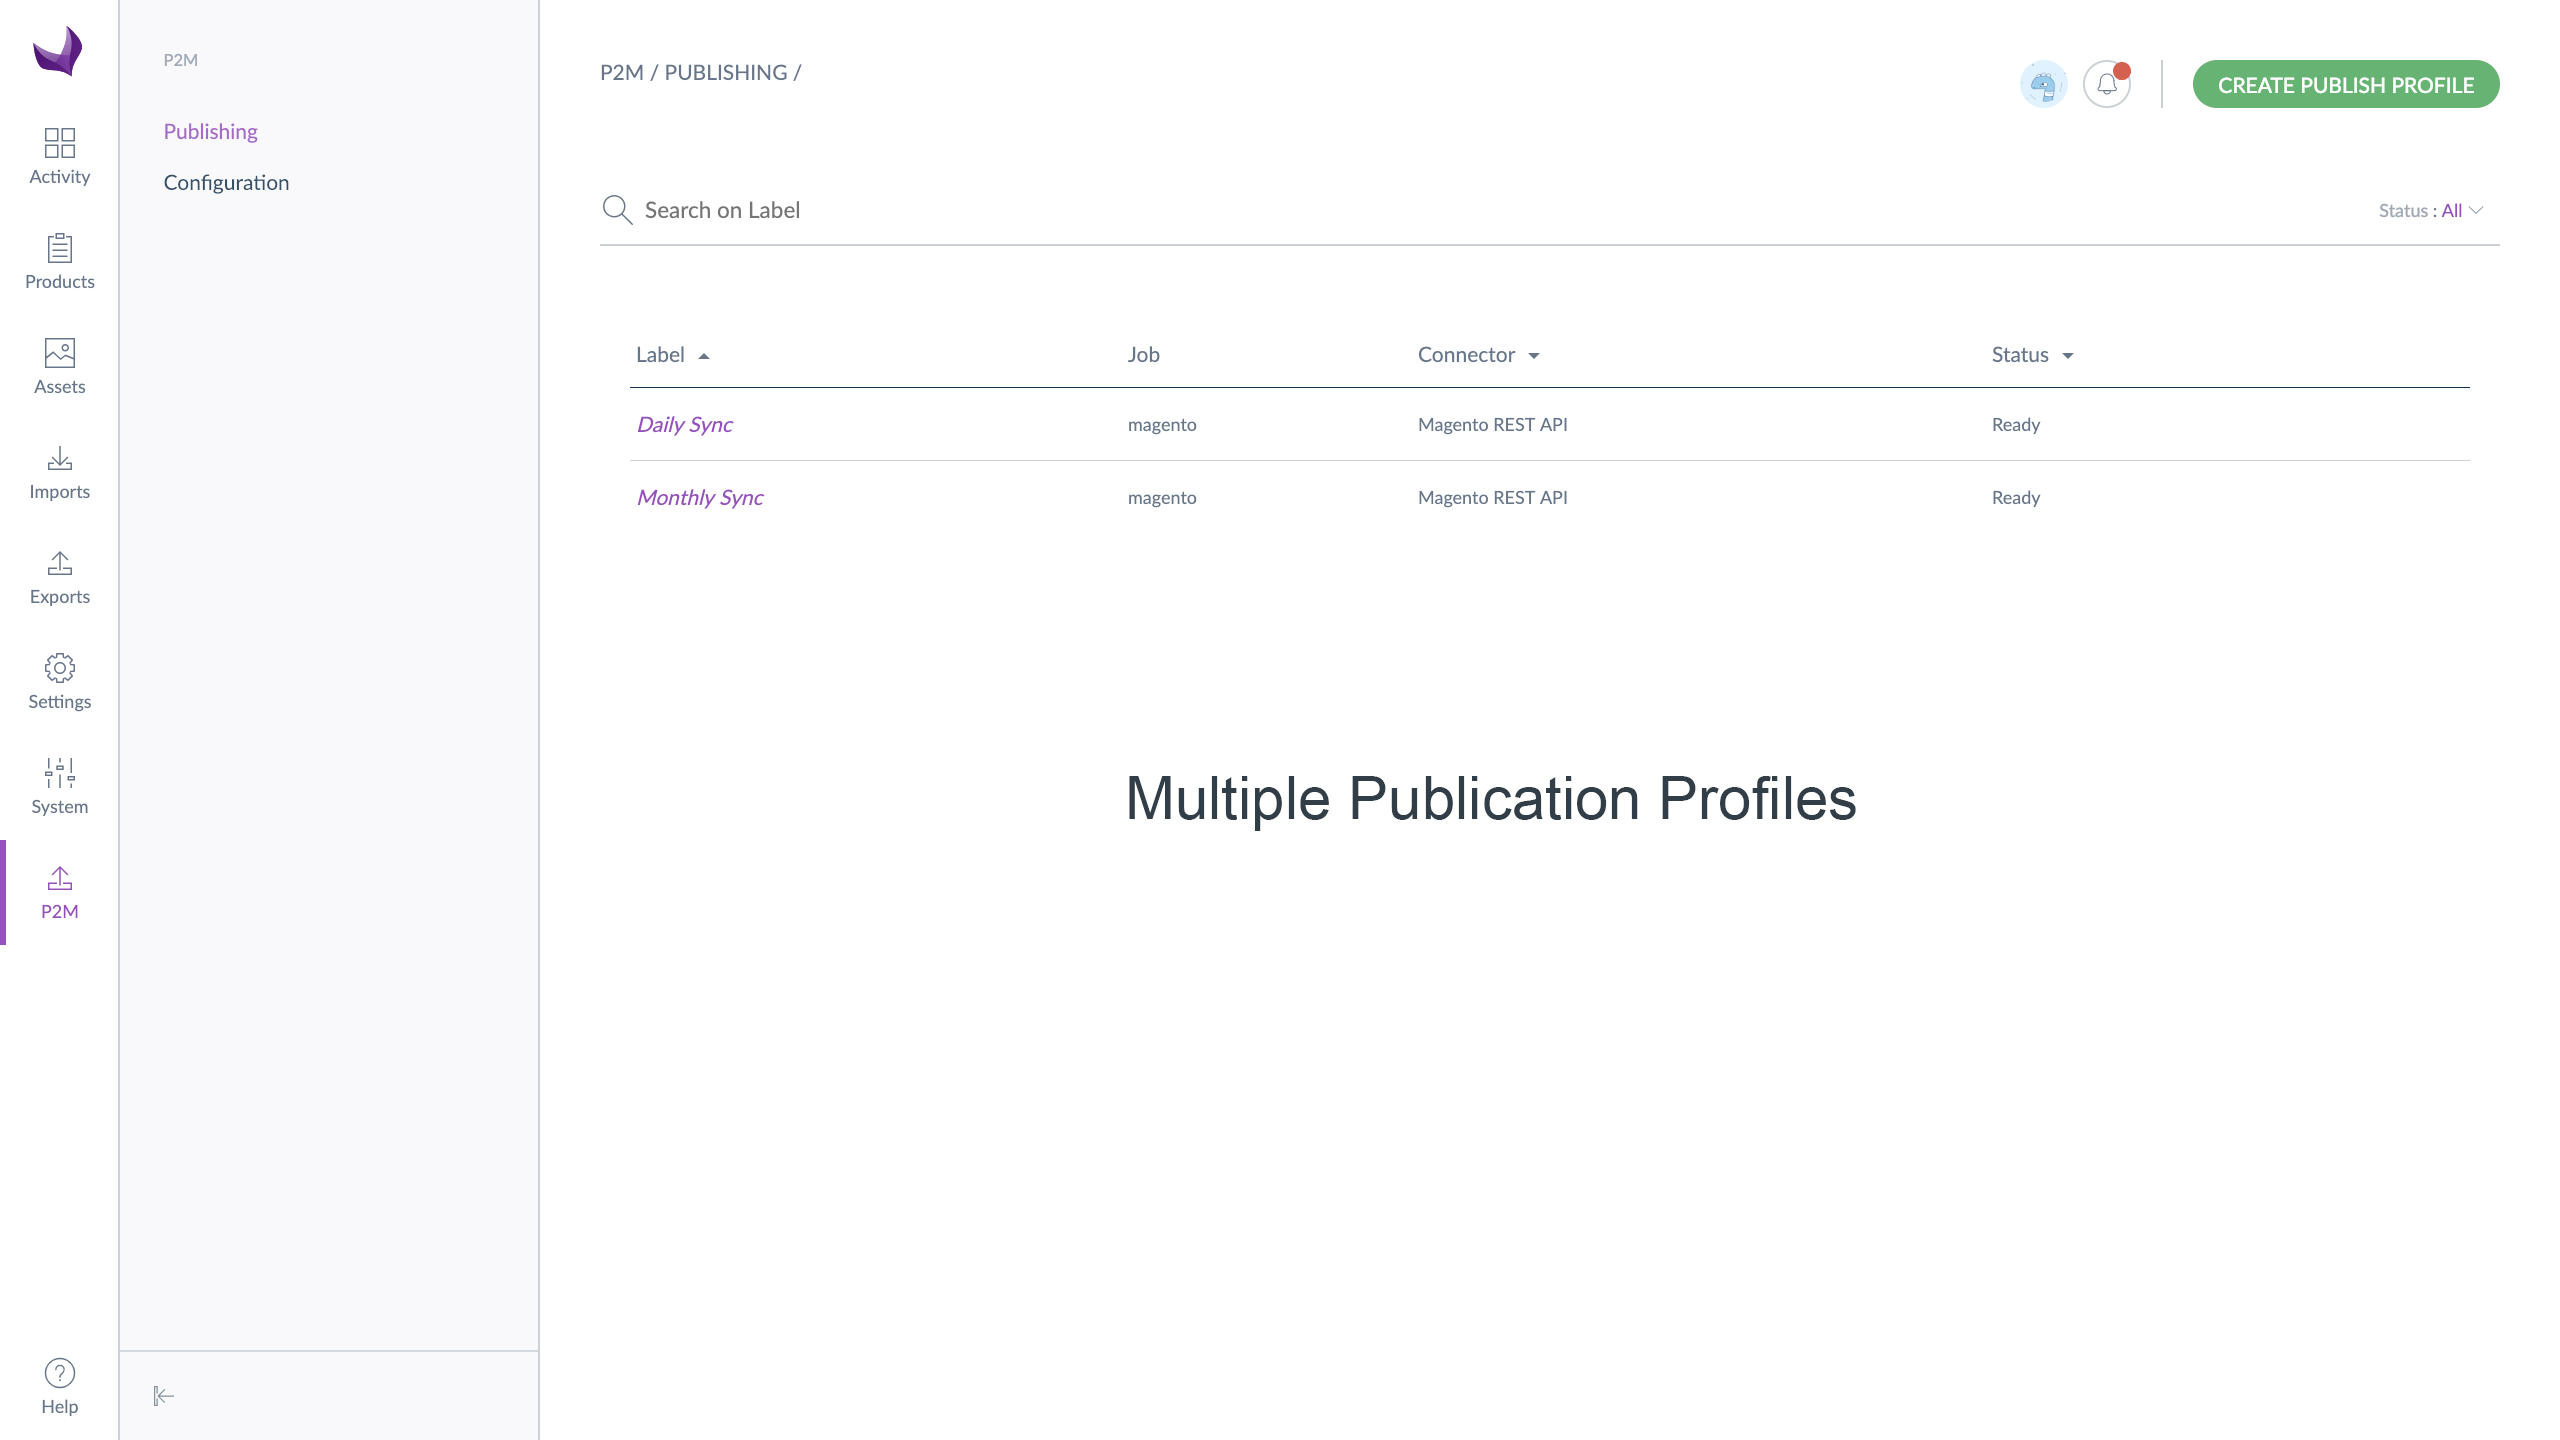 Multiple Publication Profiles